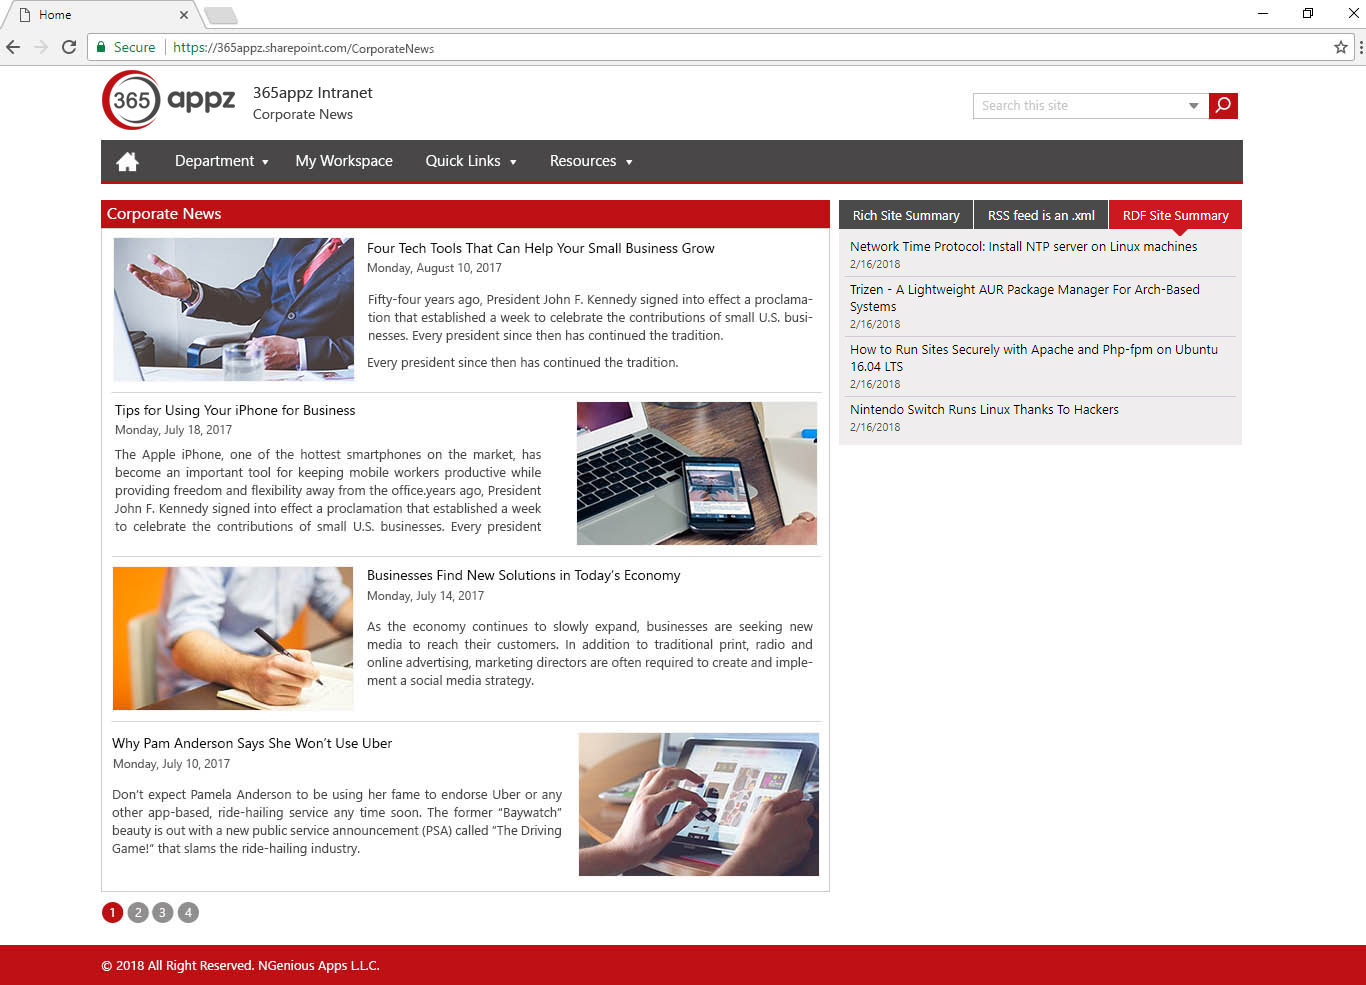 Example corporate news page